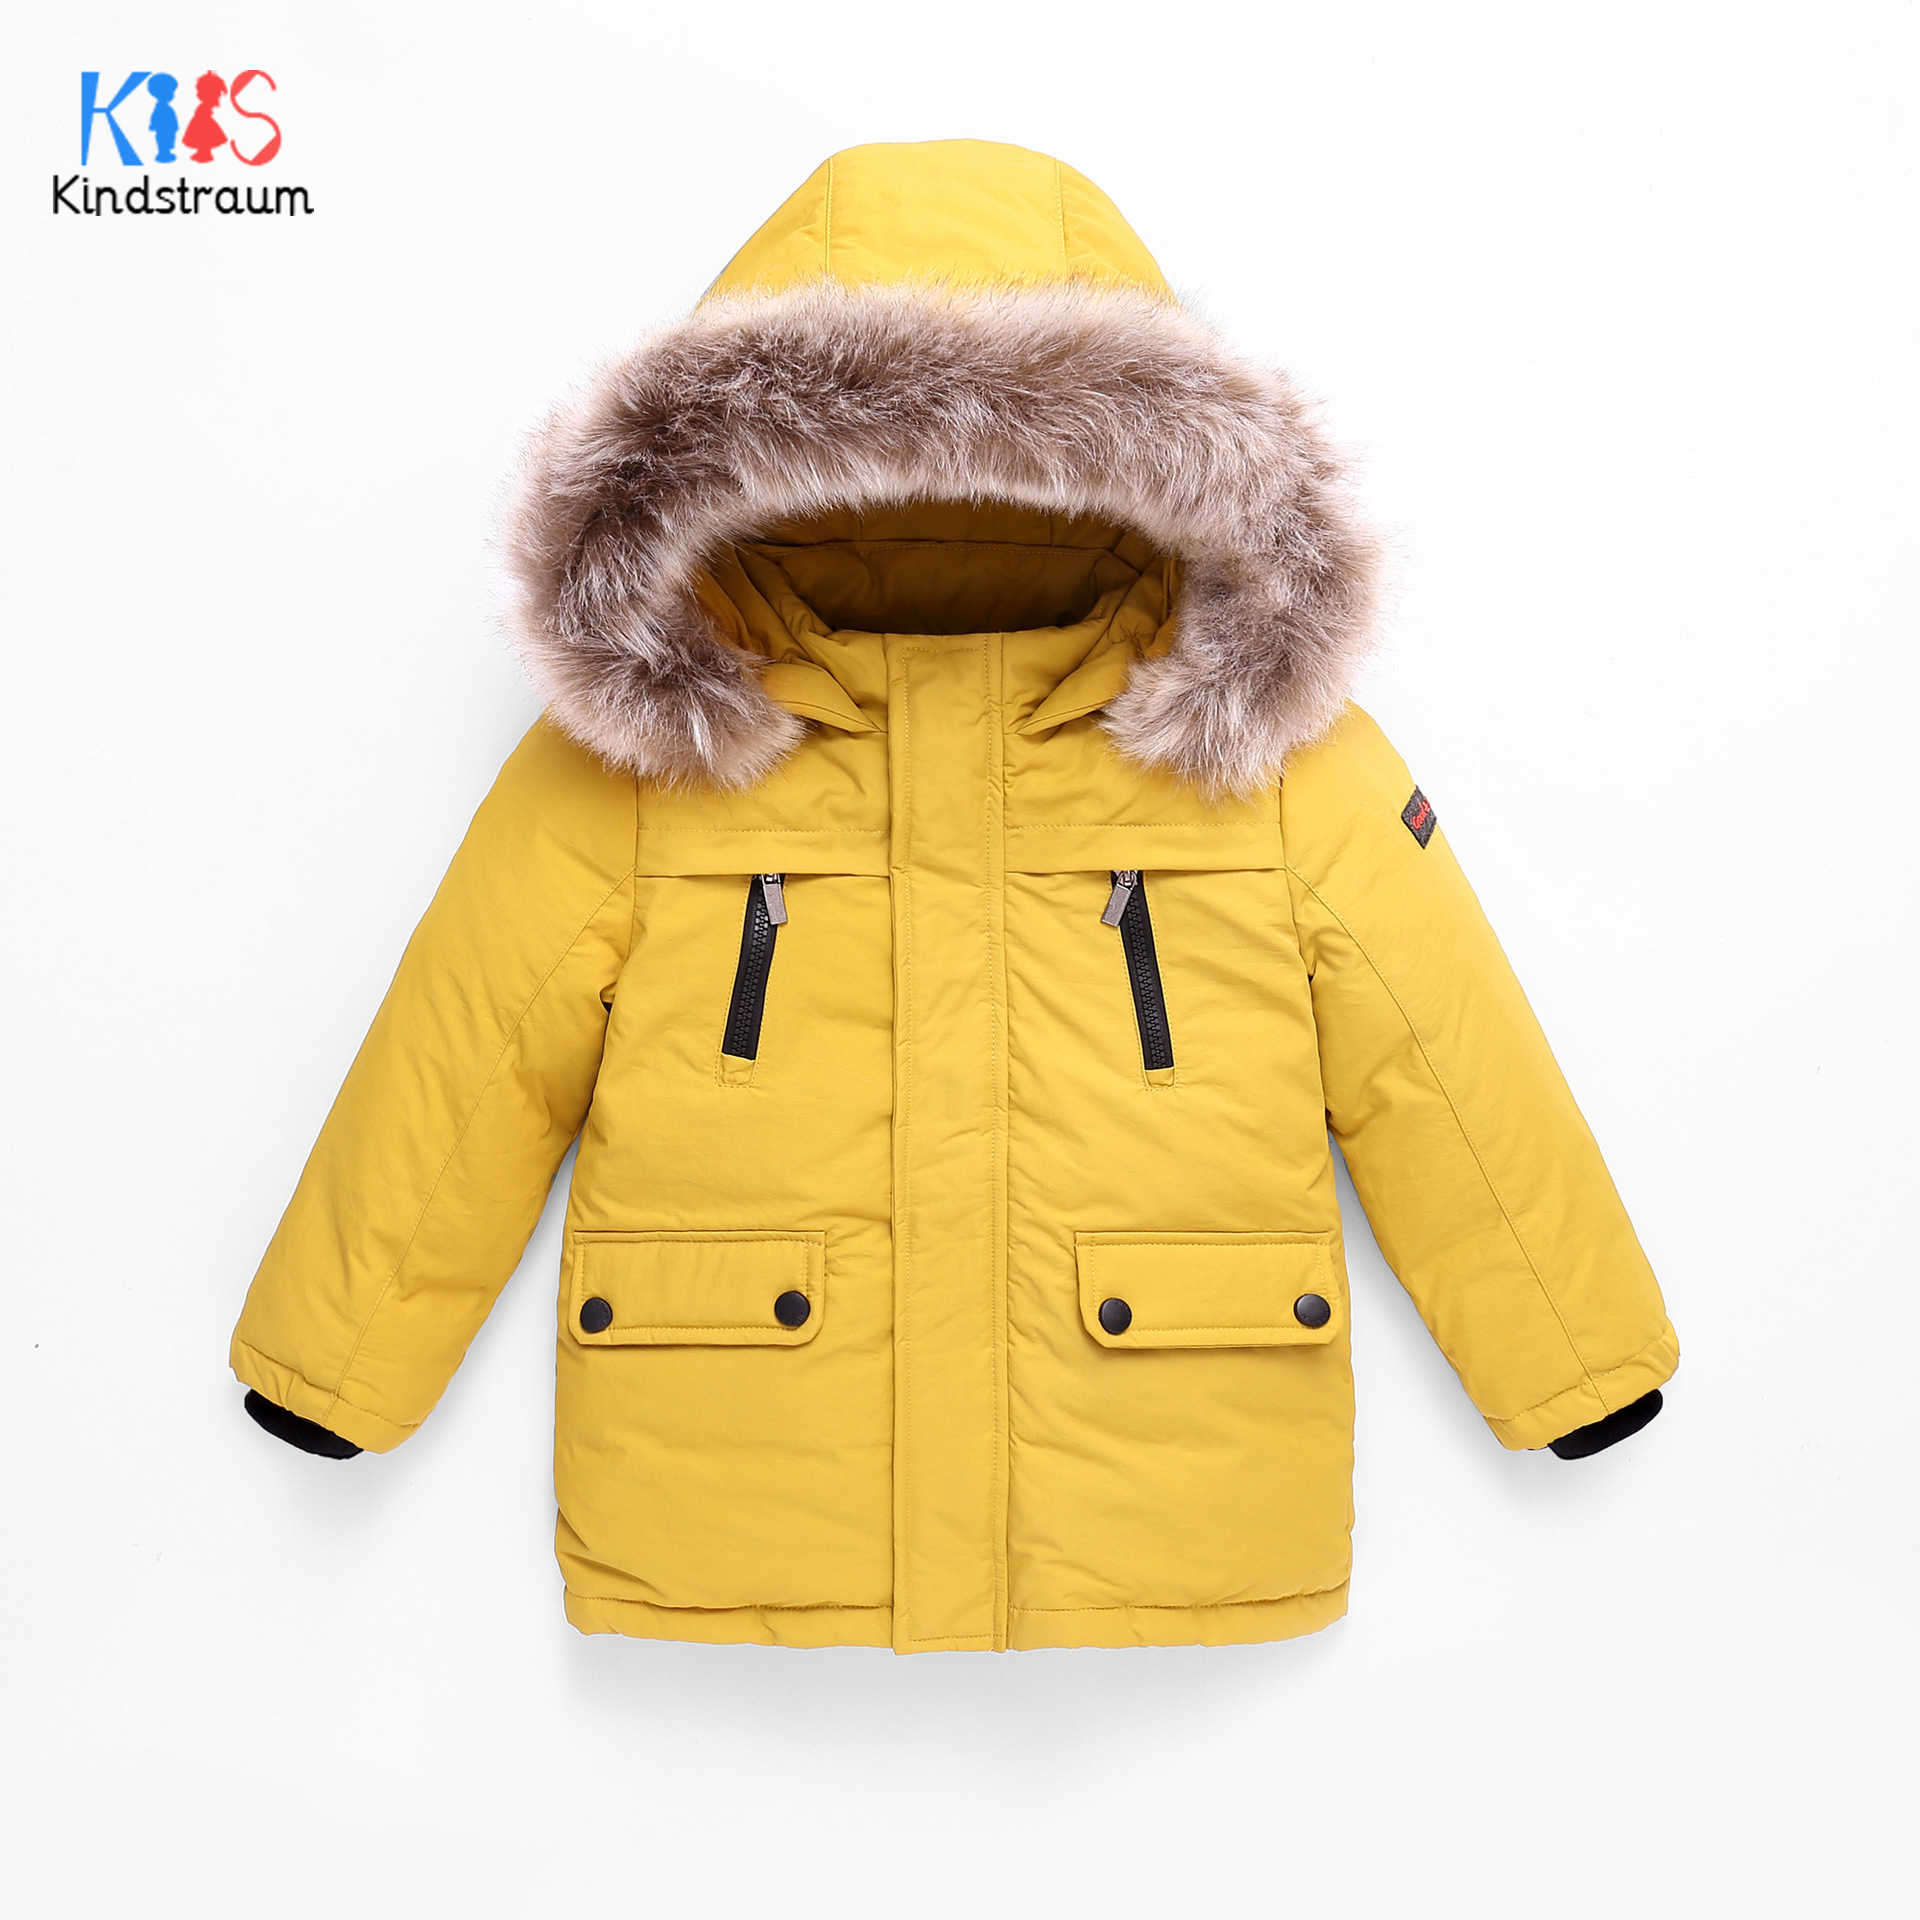 2020 Children's Winter Jackets Boys Duck Down Jackets For Boys Fur Collar Warm Kids Girls Down Outerwear Coat 4-12T DC202